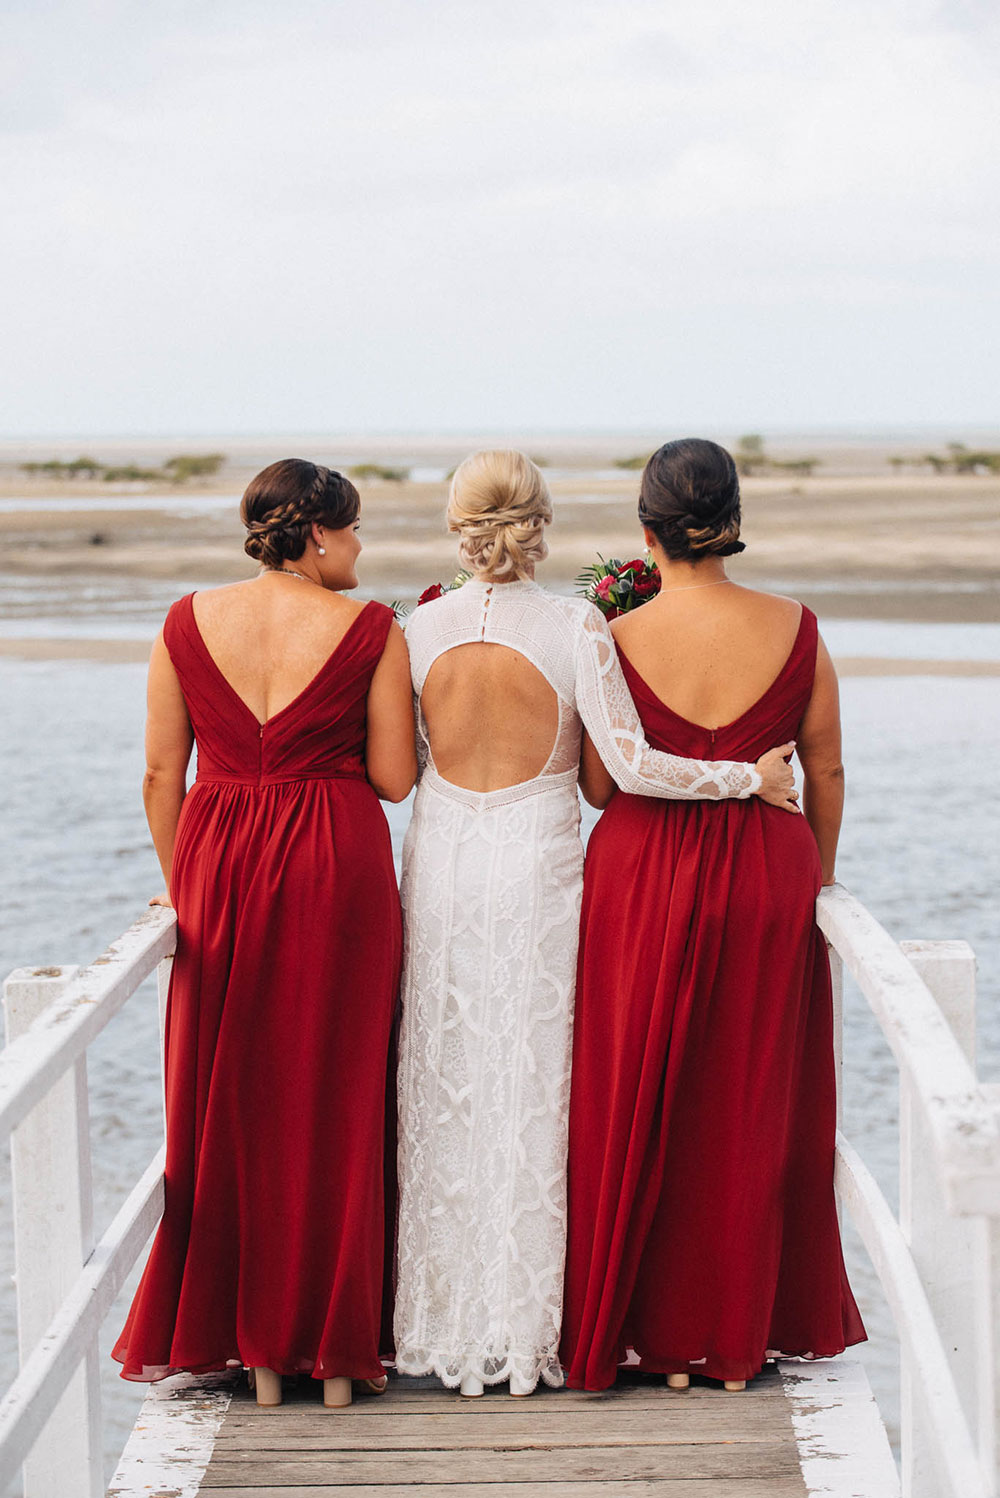 Krystle and her bridesmaids